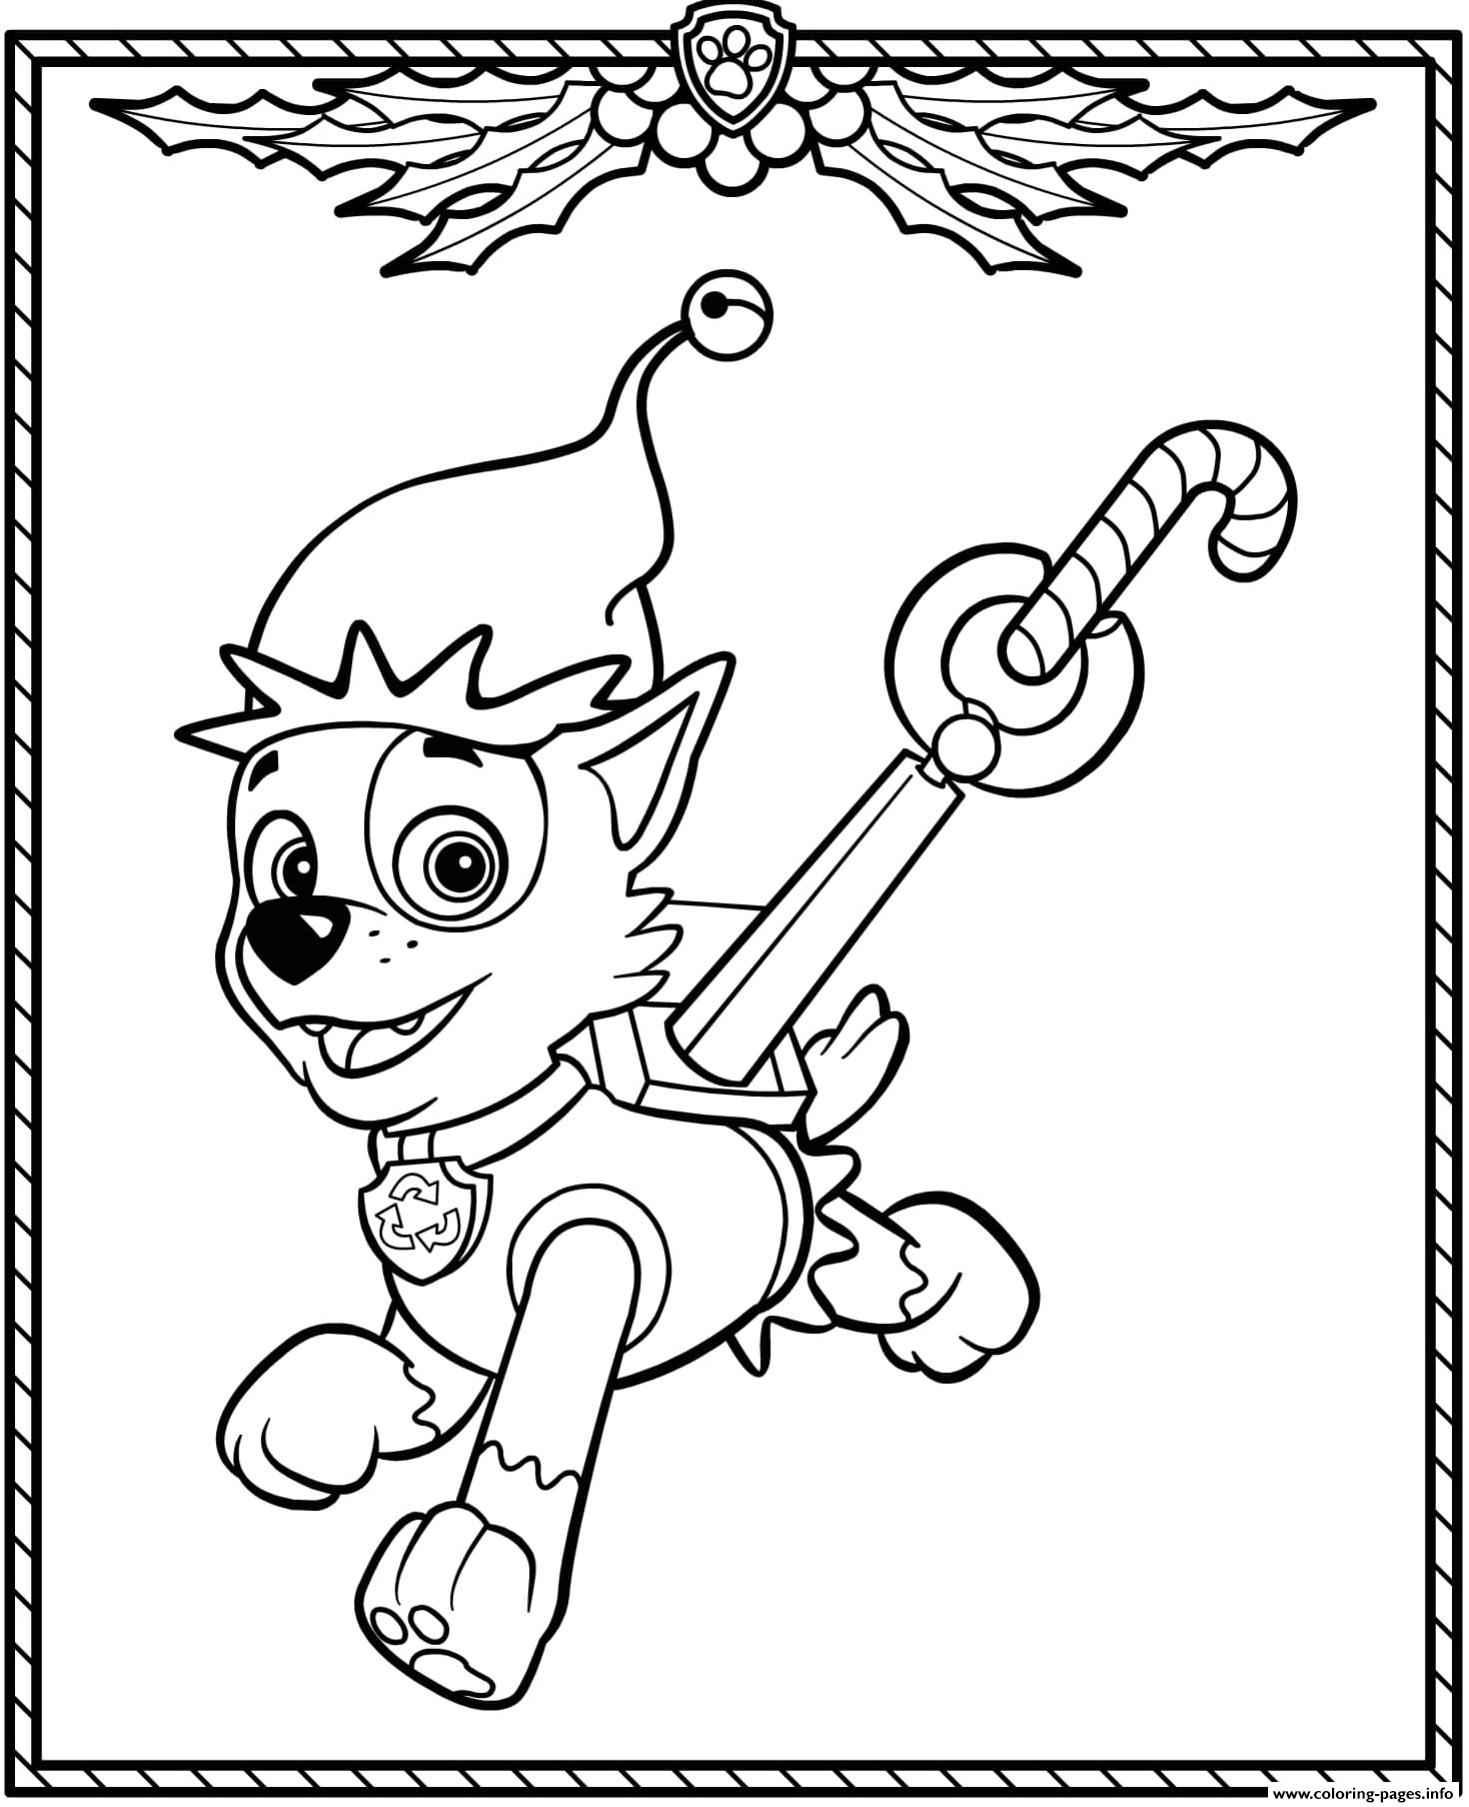 paw patrol rocky rocky paw patrol coloring page at getdrawings free download paw rocky patrol